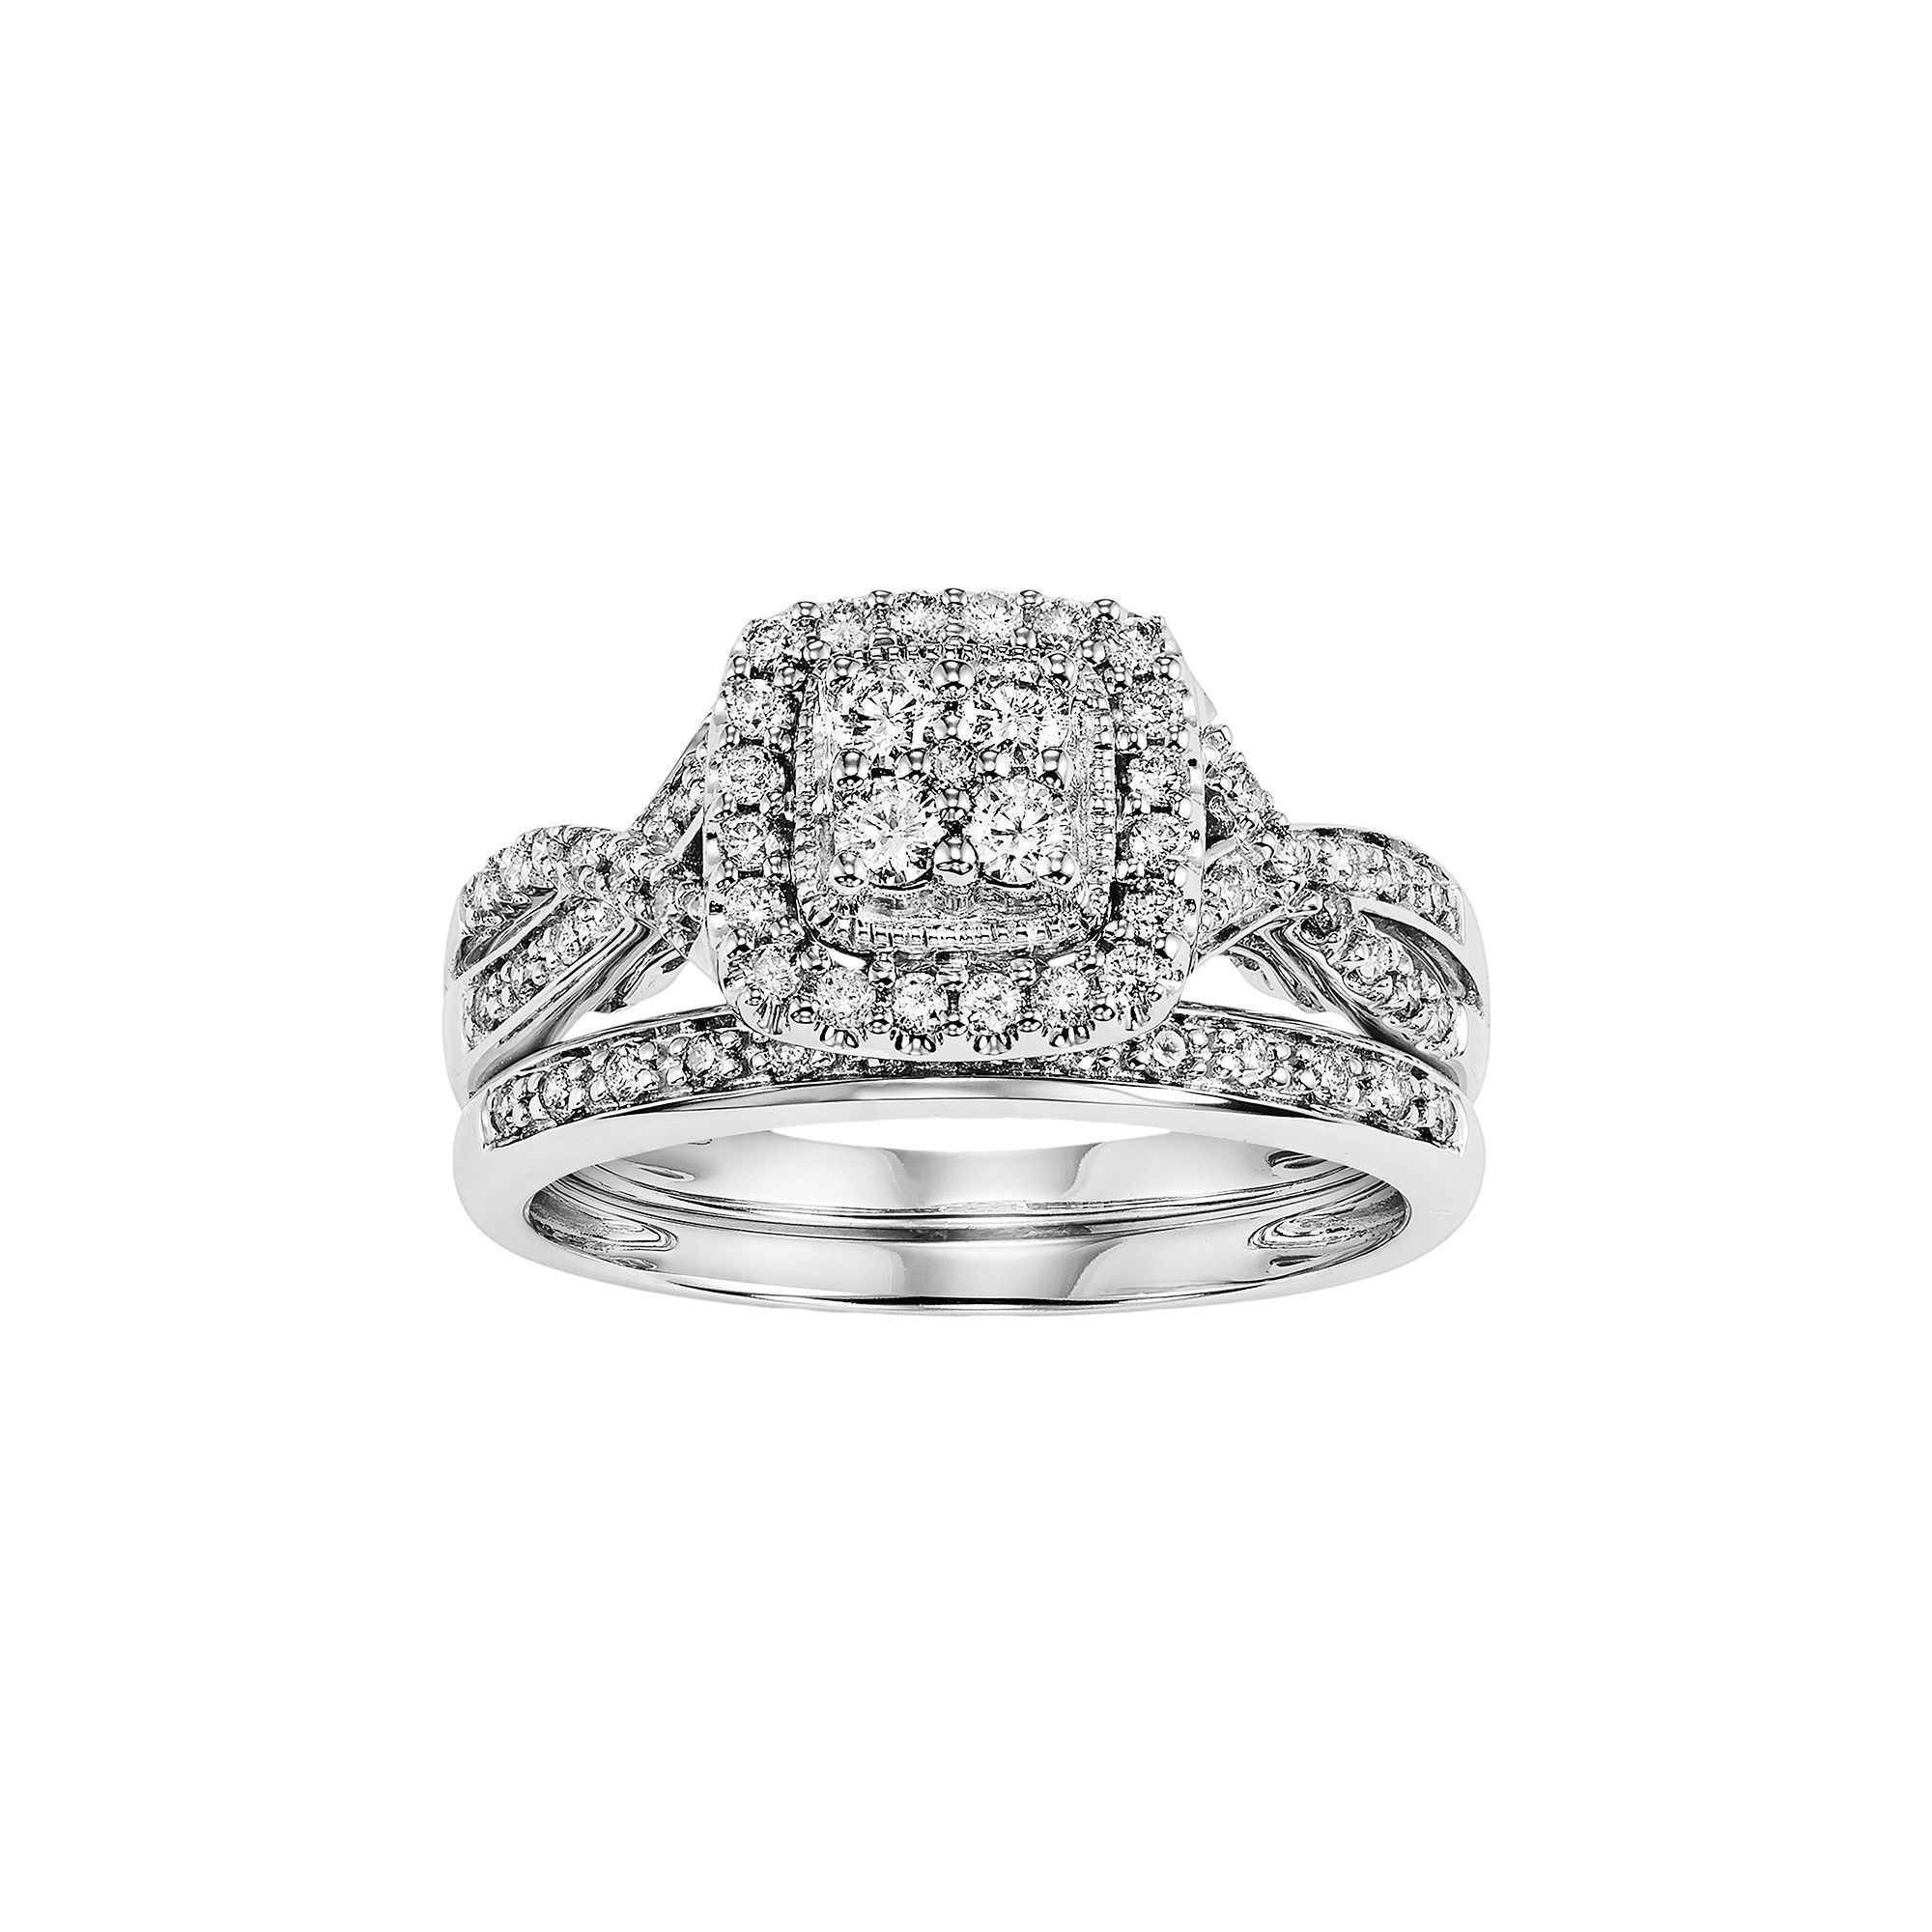 lugaro forevermark sgr rings men diamond bands wedding ideal engagement square s collections ring